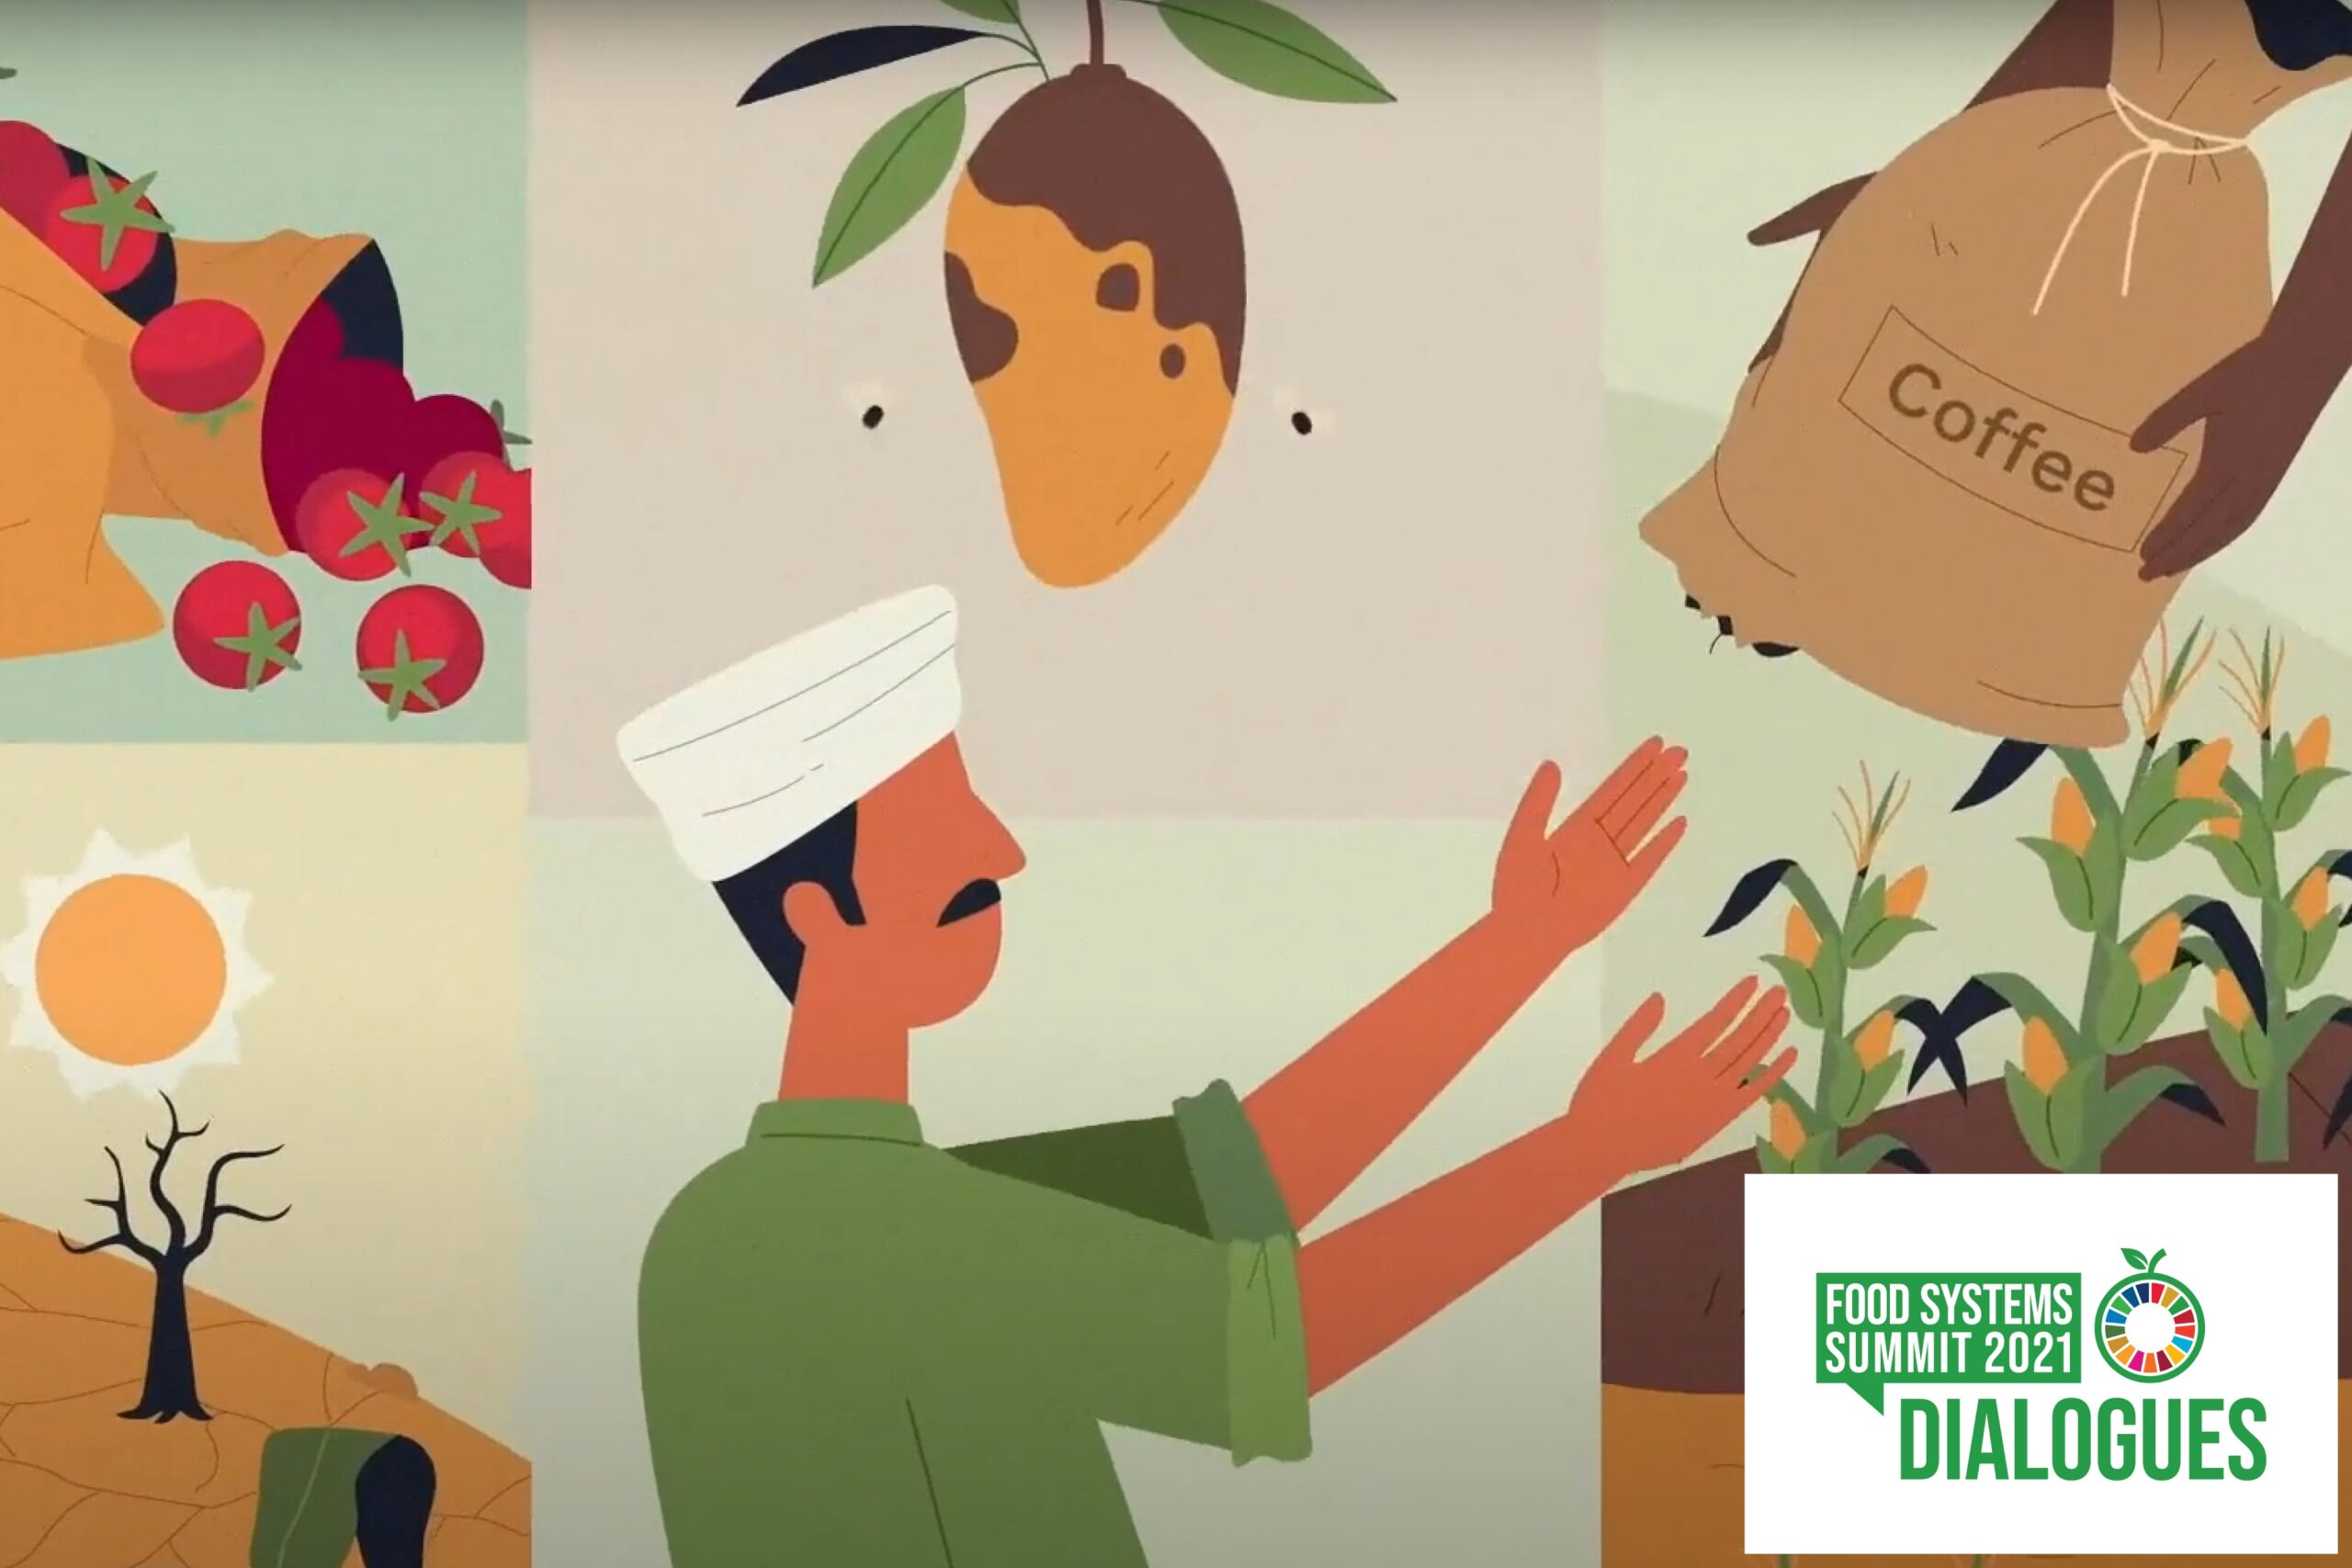 Animation of person and various types of food loss